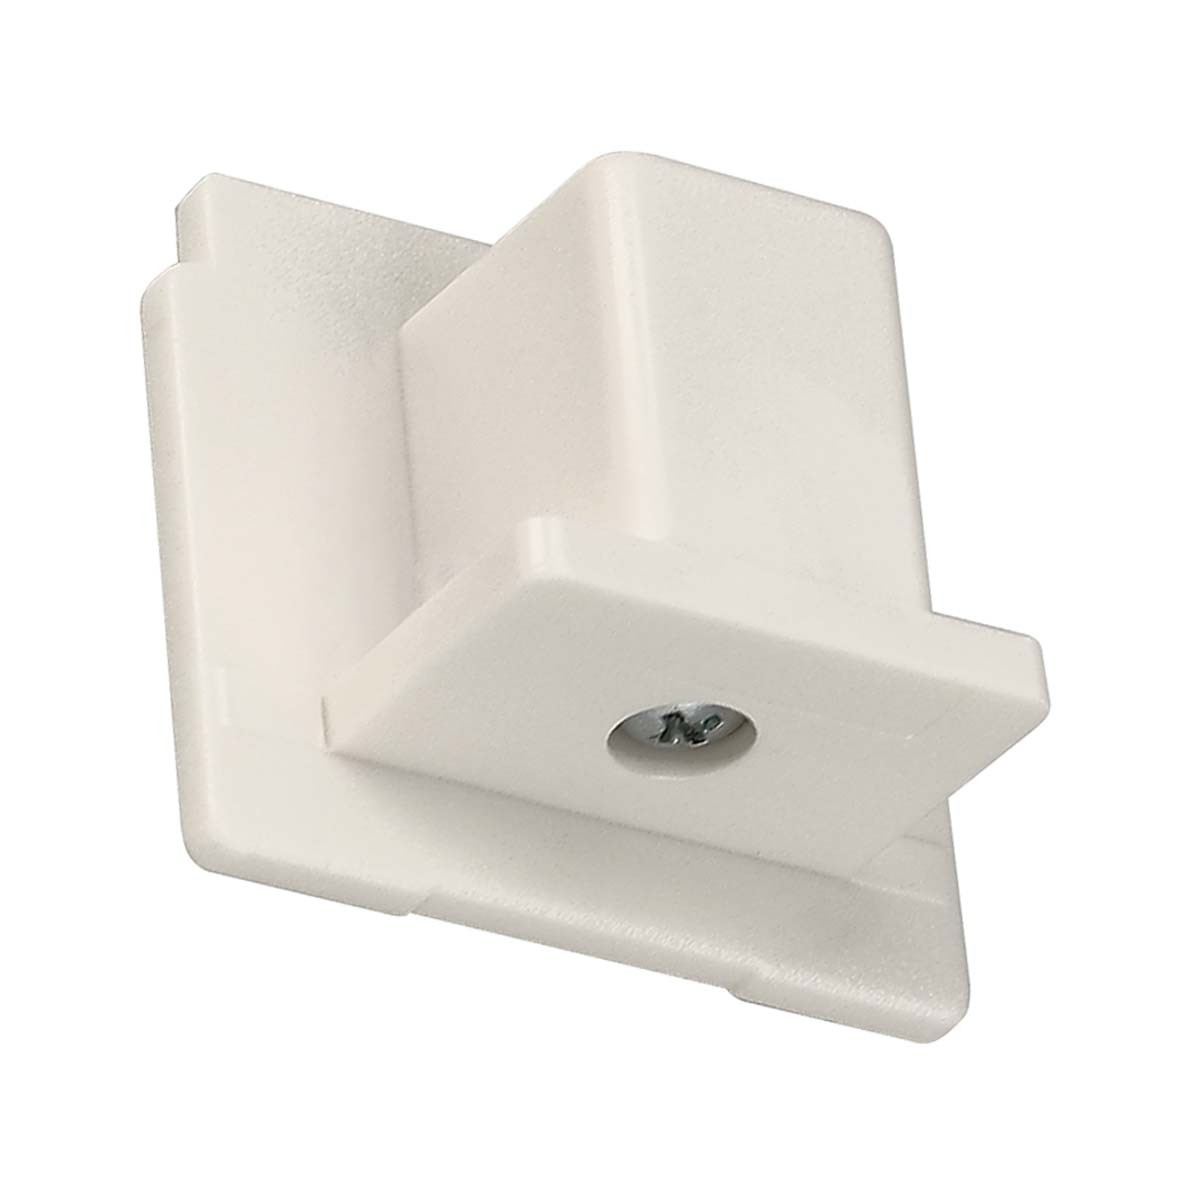 SLV 145591 End Cap White Eutrac 3 Circuit 240V Surface Track Accessory